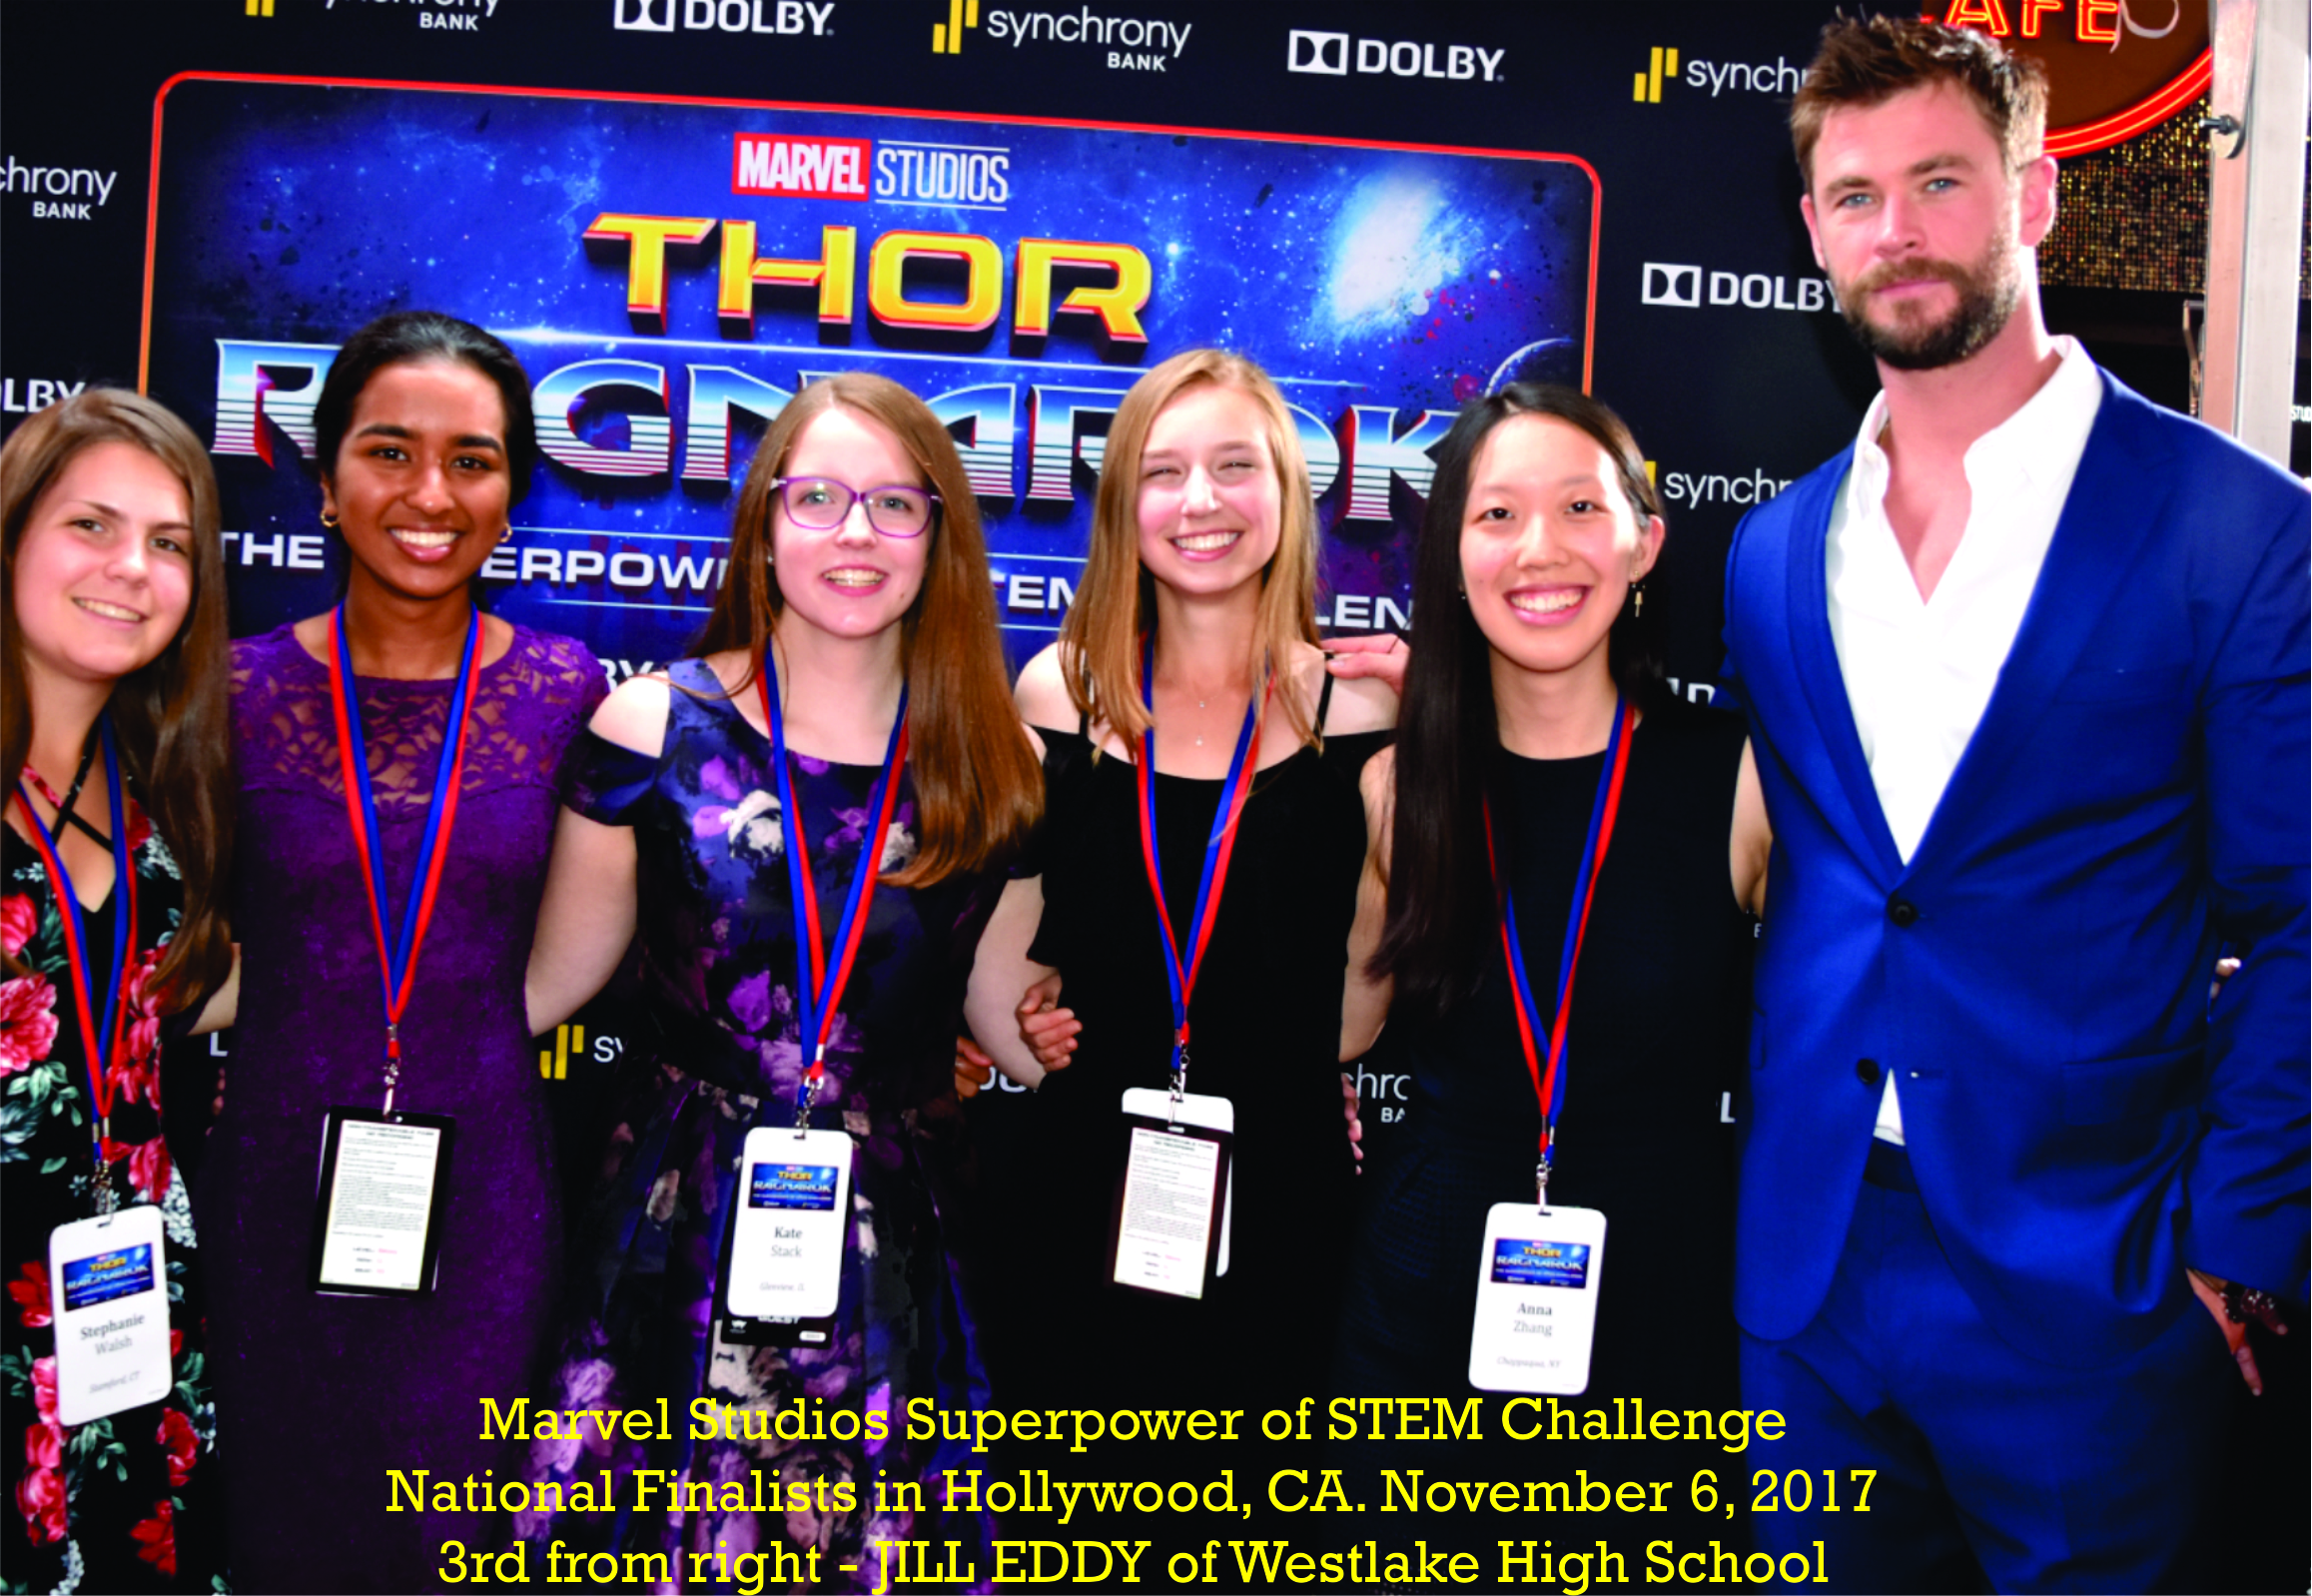 "Marvel Studios Superpower of STEM Challenge - National Finalists at the red carpet premier screening of the new movie ""Thor - Ragnarok"" in Hollywood, CA. - Jill Eddy of Westlake High School - 3rd from right 11-6-18"